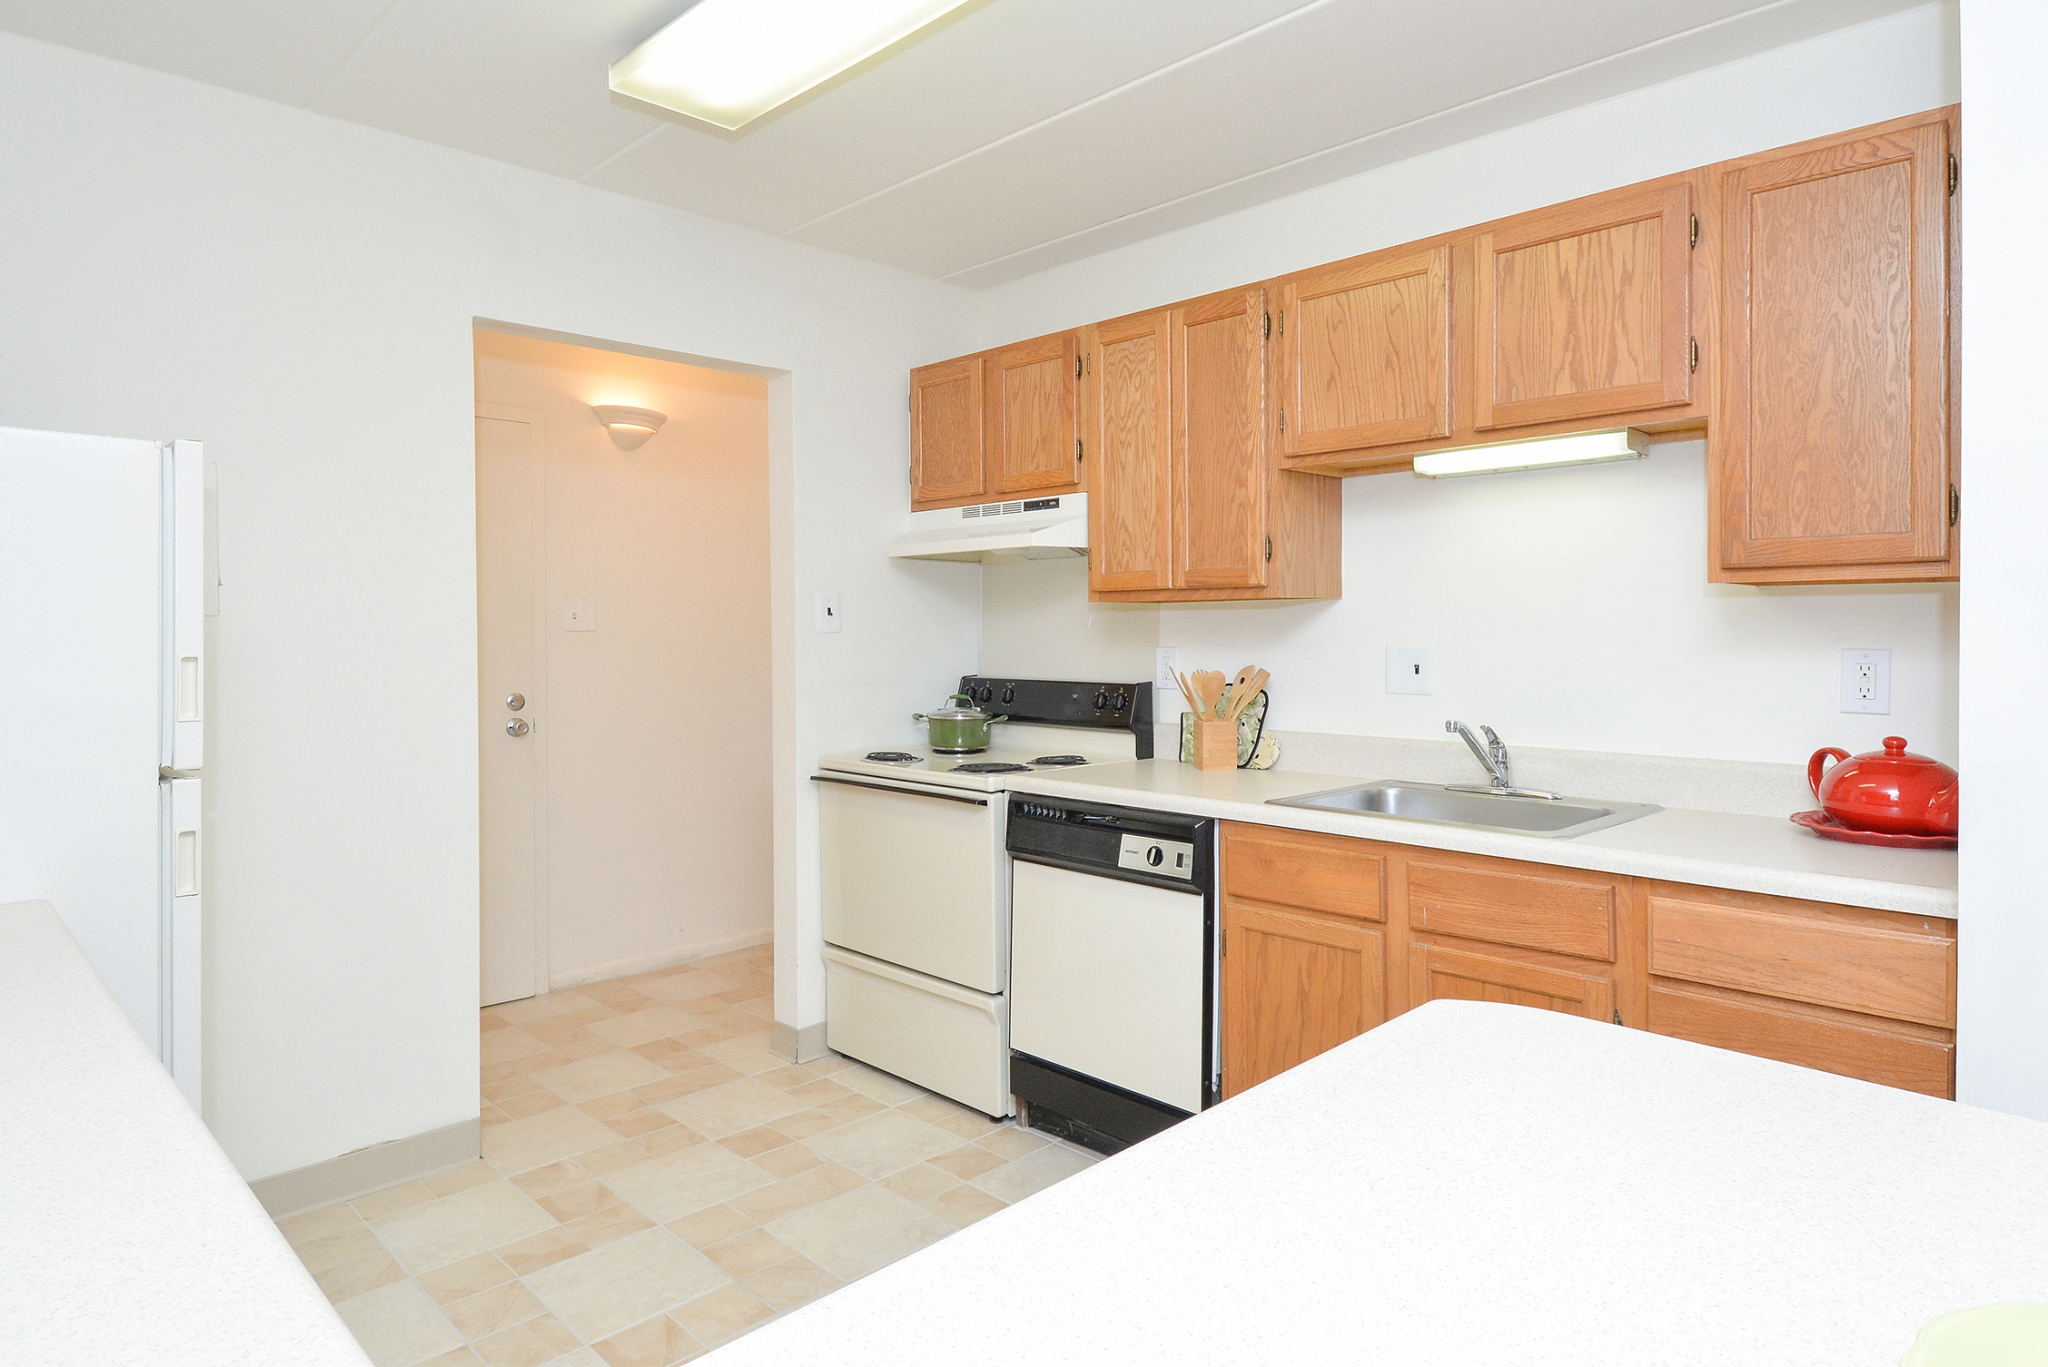 Fairway Park Sample Kitchen with Brown Cabinets and White Appliances | Apartments Near Wilmington DE